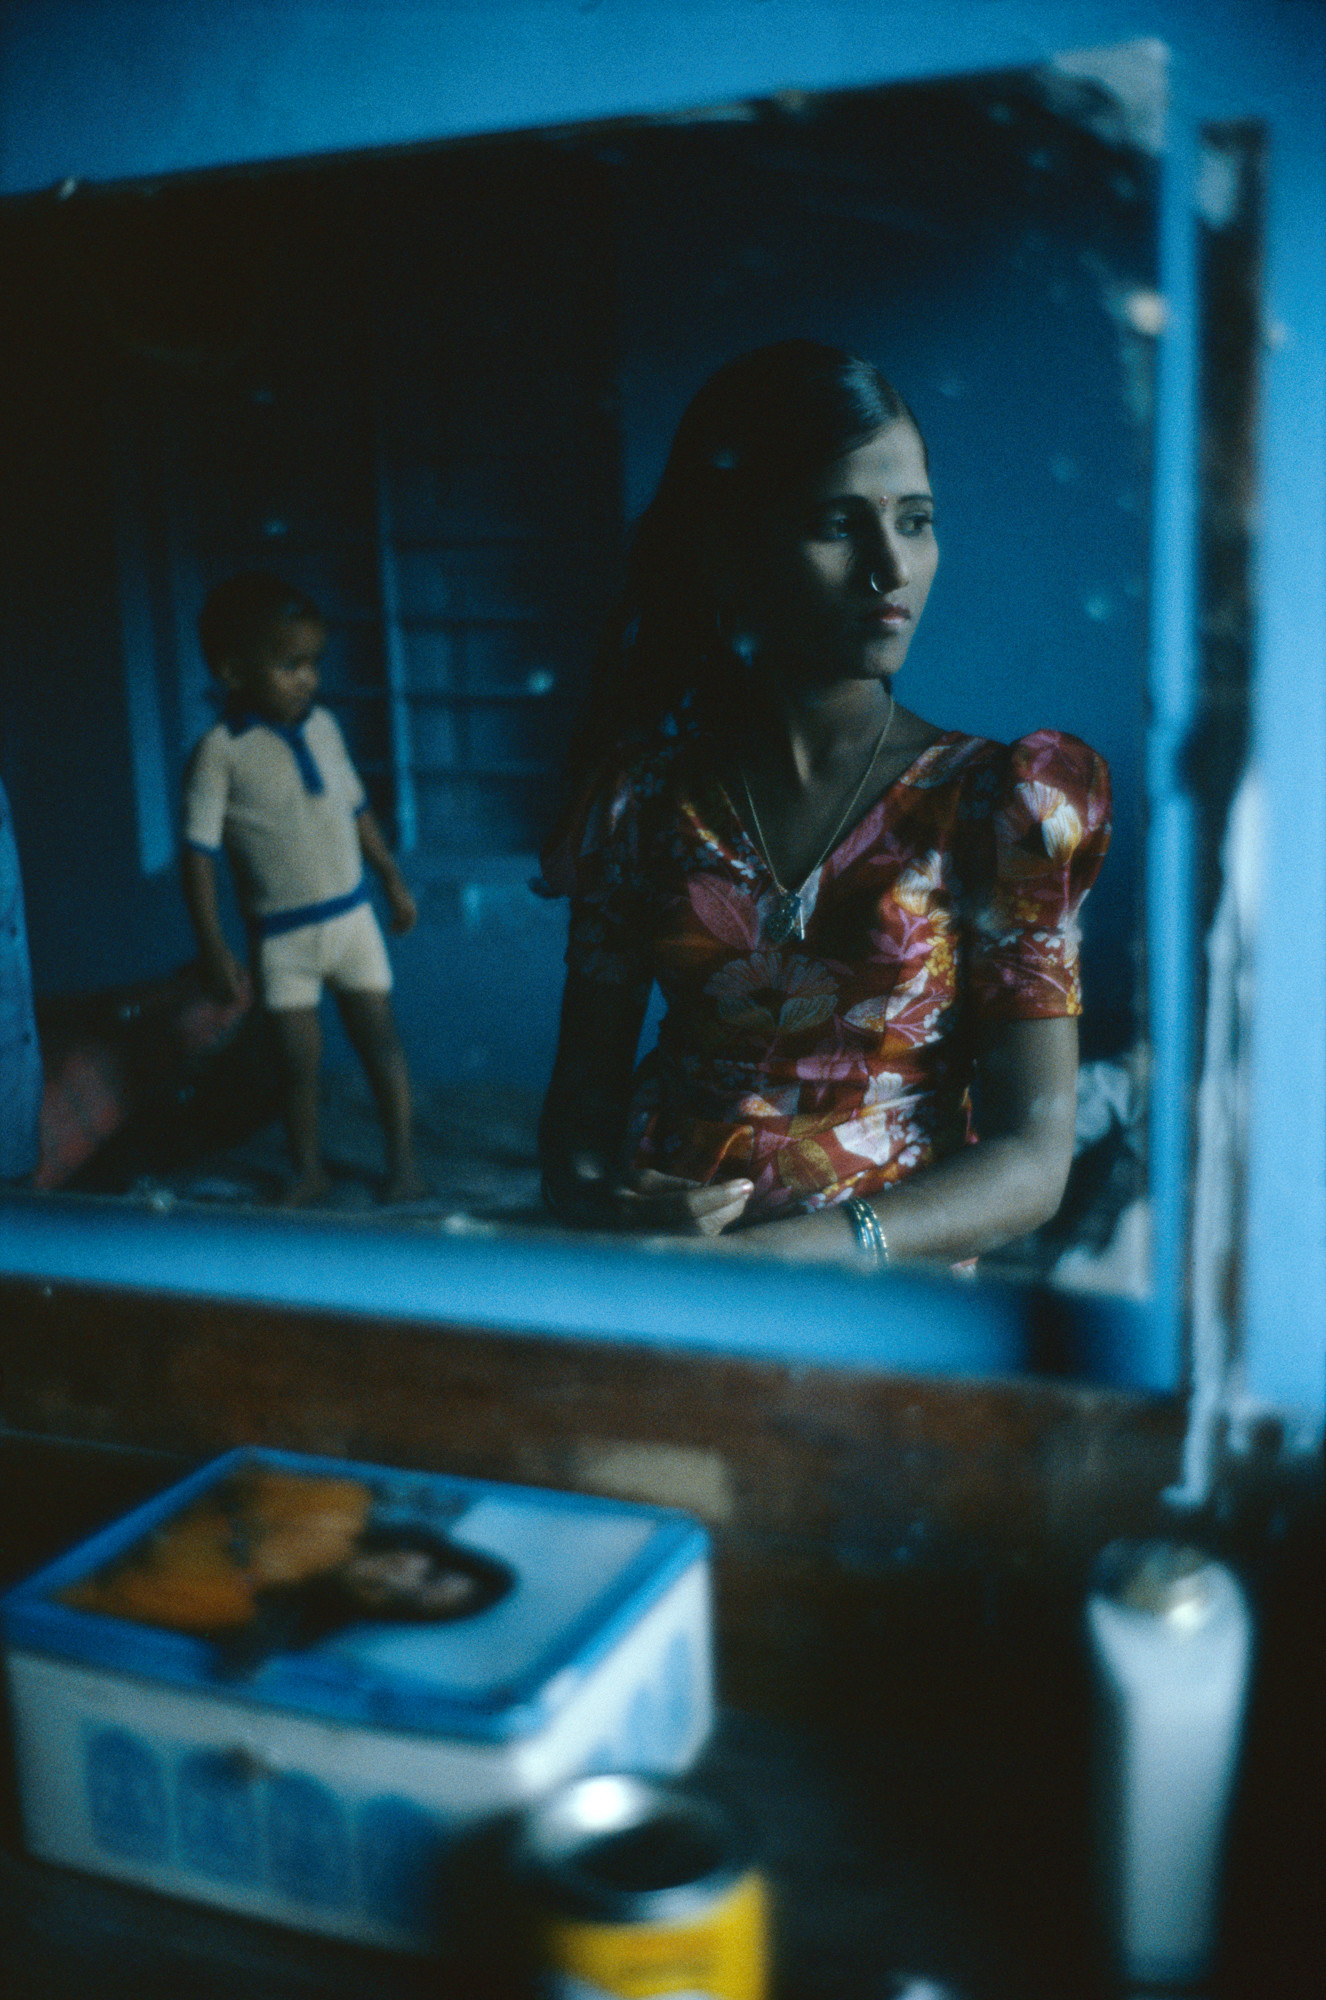 A dresser mirror reflecting a medium dark-skinned woman with long, dark hair in a vibrant red, yellow, and white dress. She faces slightly right, half of her in shadow, and wears a bindi and nose ring. Behind her is a medium-dark skinned child and they are in a very blue room.